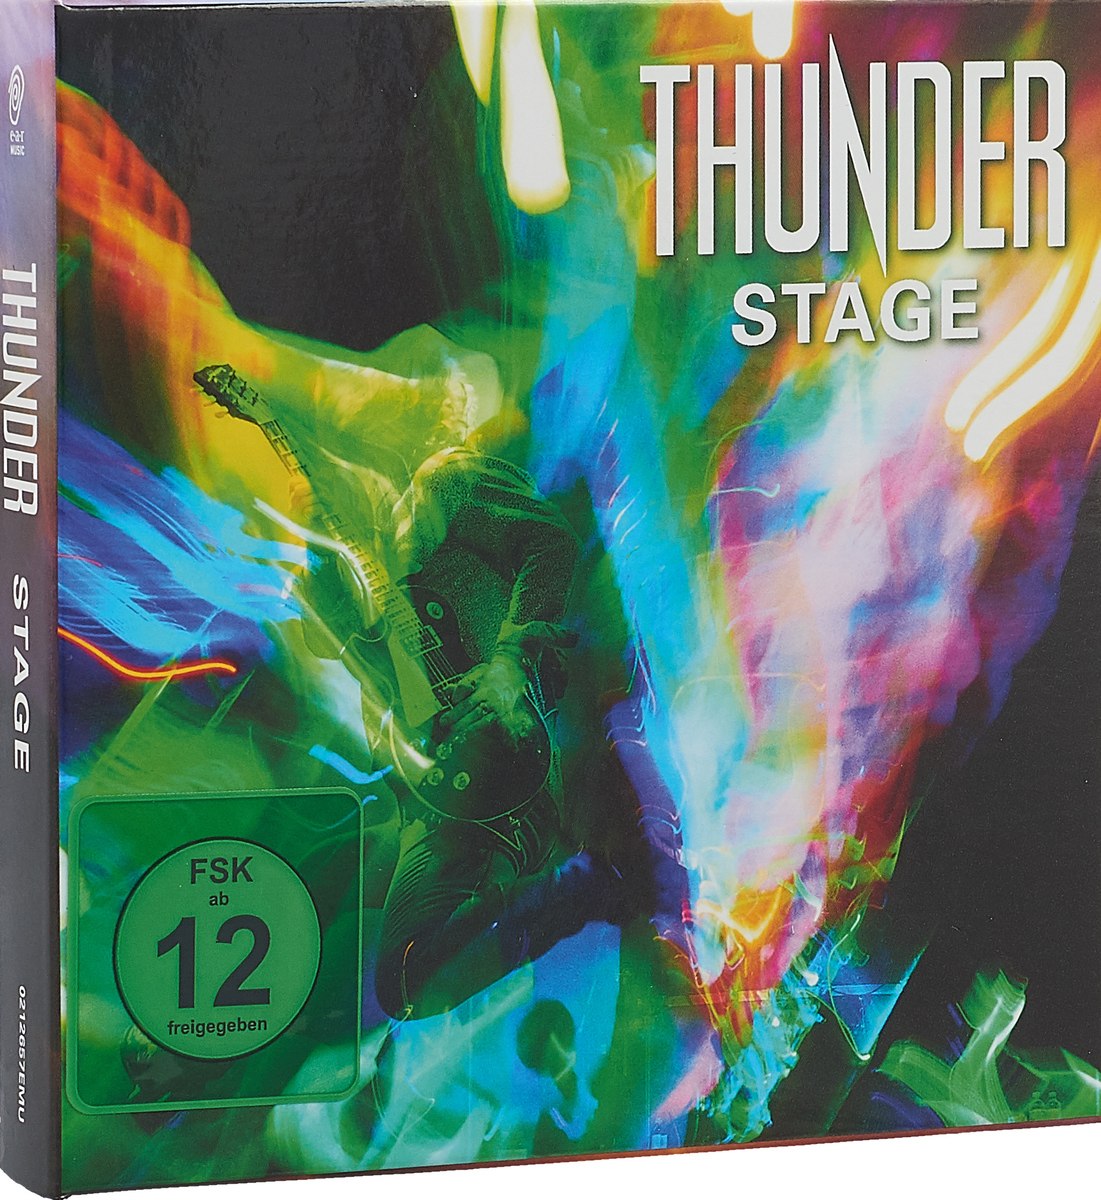 Thunder: Stage. Limited Super Video (Blu-ray + DVD) rush beyond the lighted stage blu ray